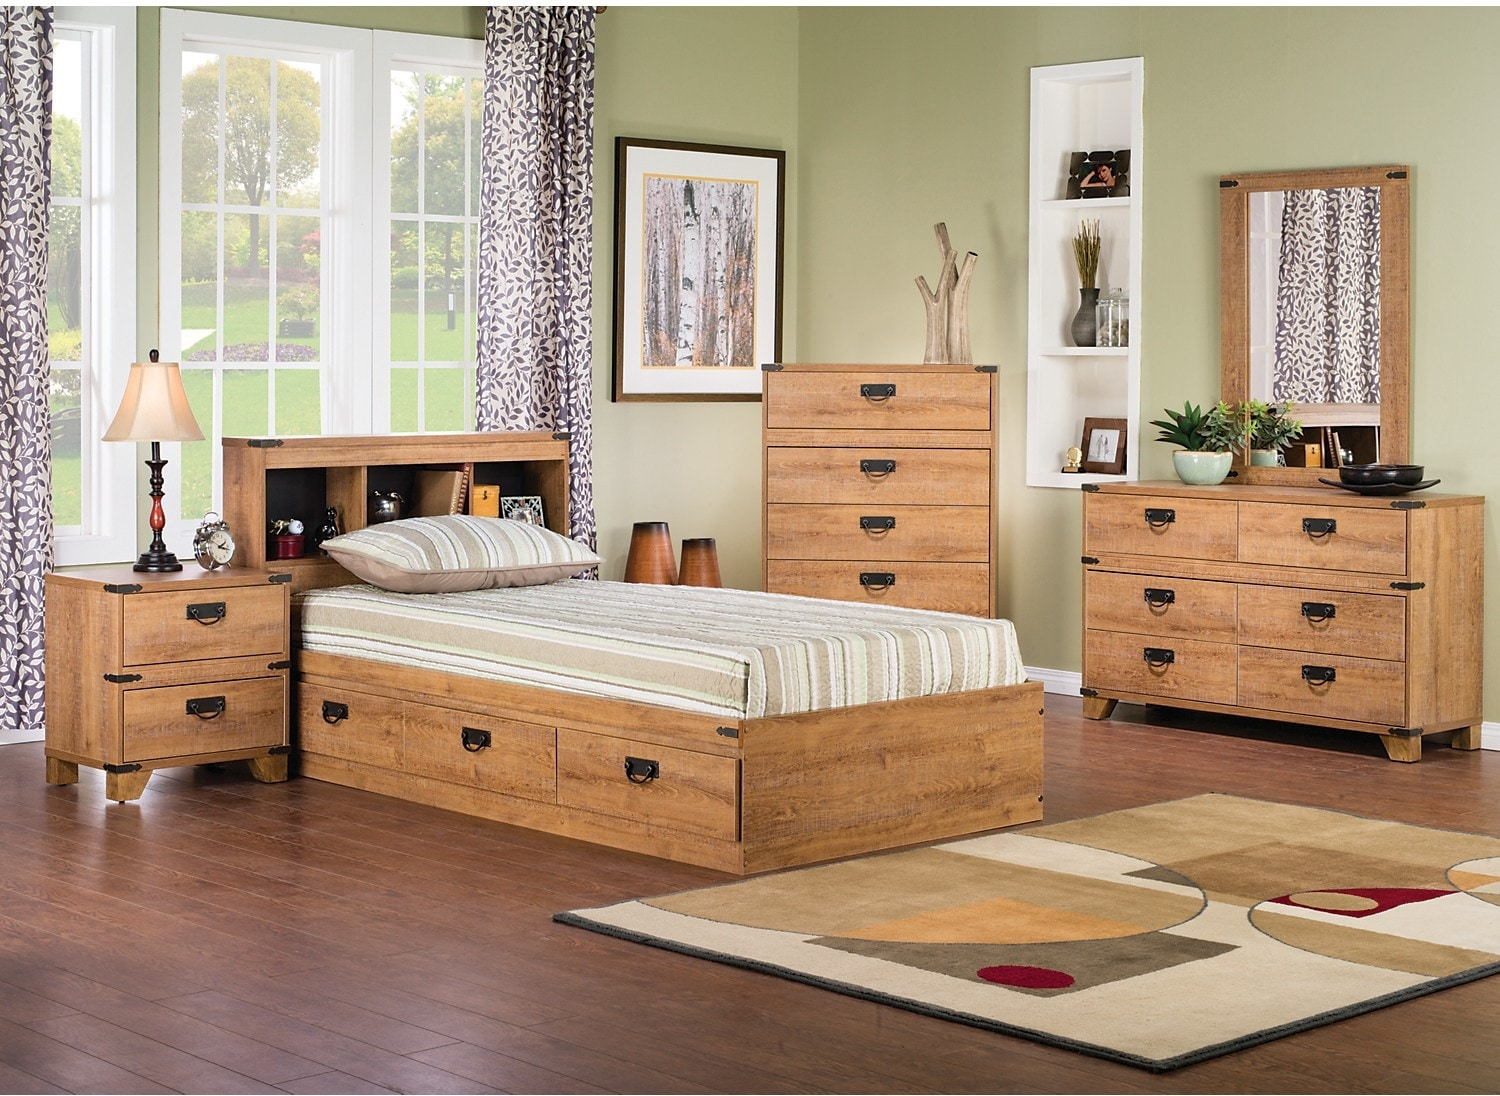 Kids Furniture - Driftwood 5-Piece Mates Bedroom Package